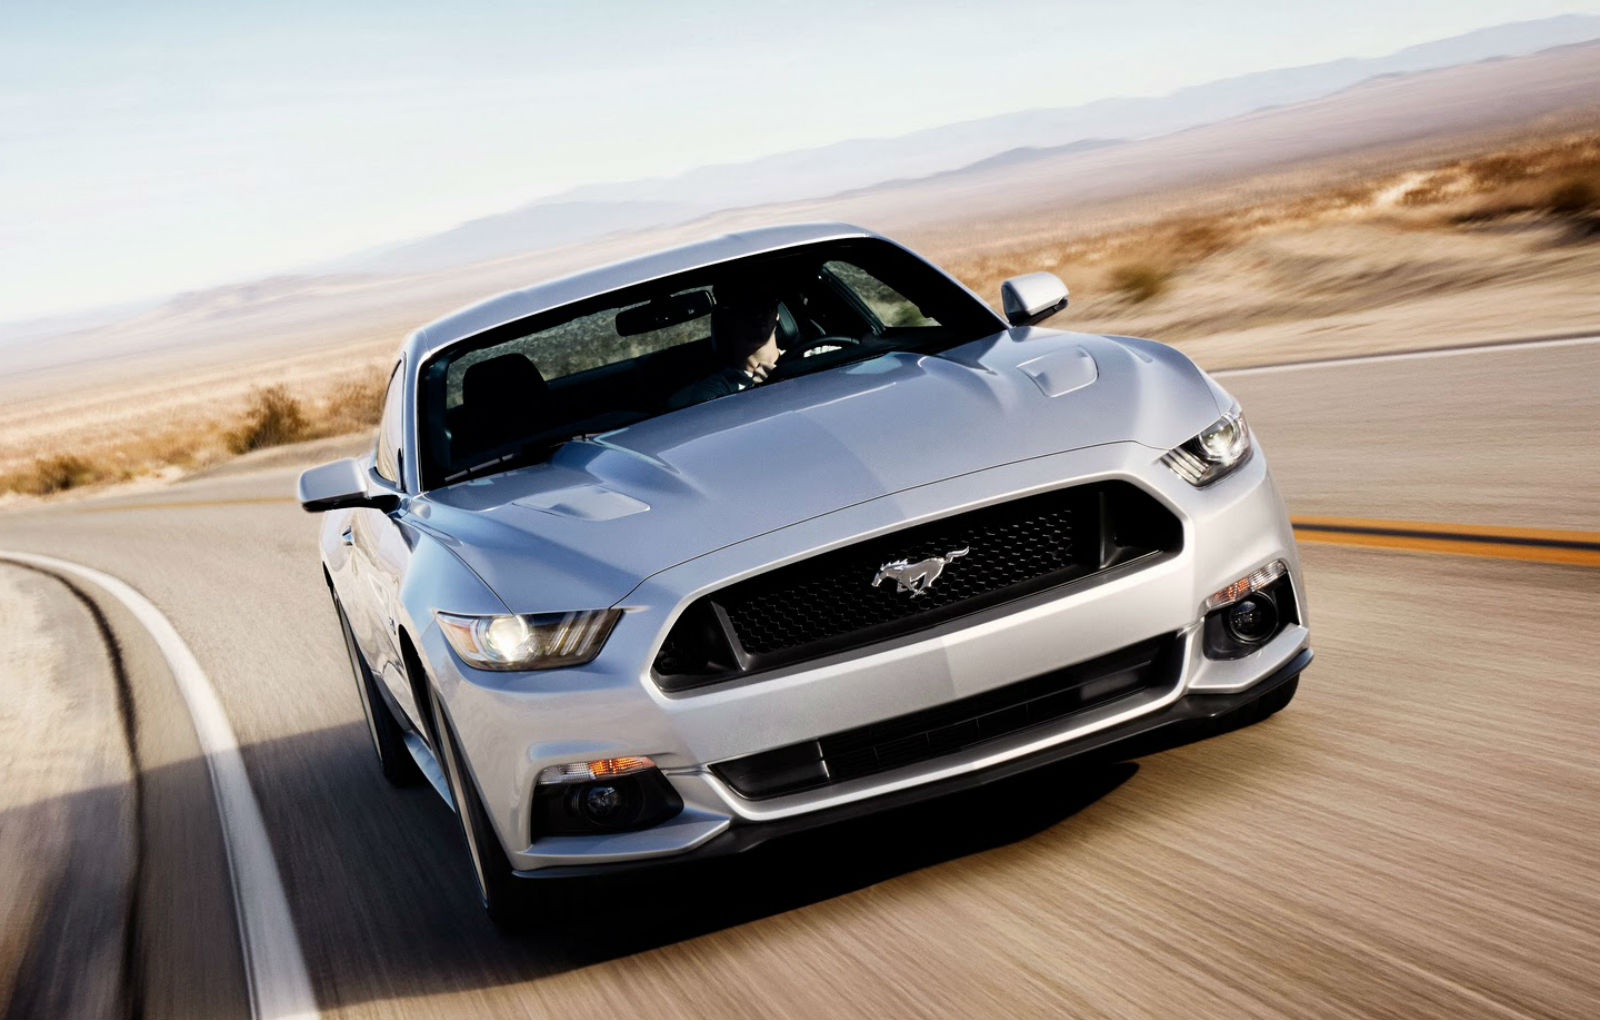 2015 Ford Mustang GT Sport Car Wallpaper   HD 1600x1020